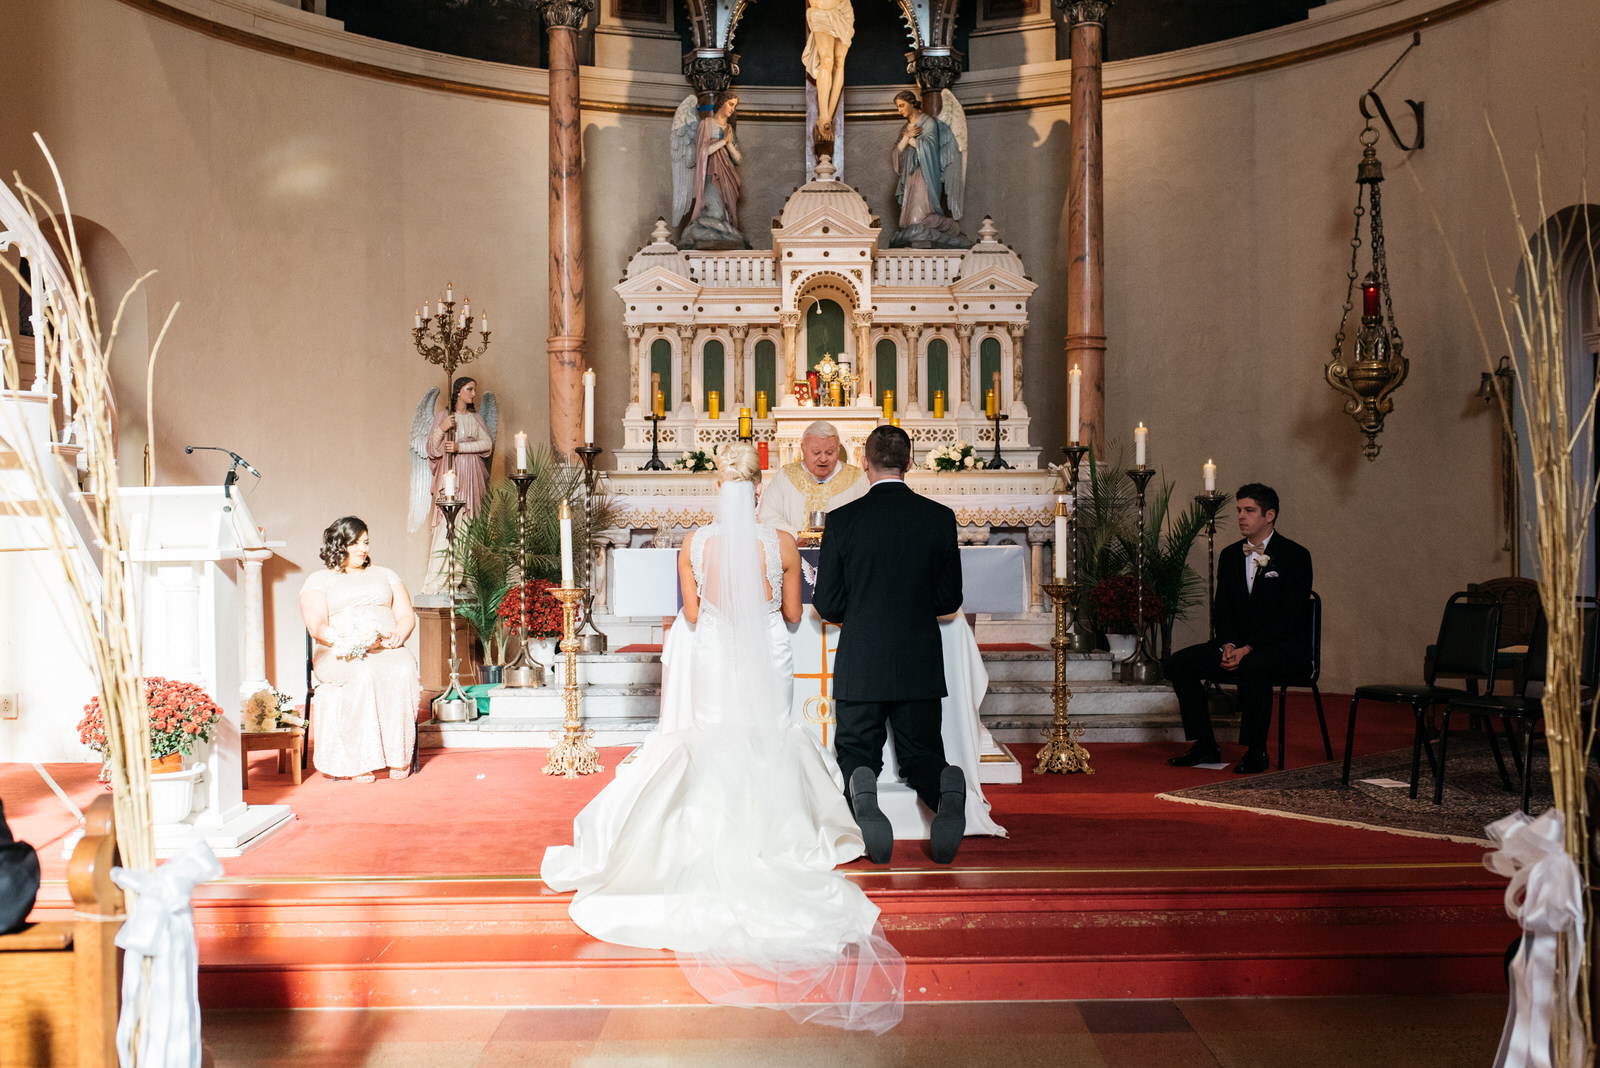 hilton_garden_inn_southpointe_pittsburgh_weddings_44.jpg